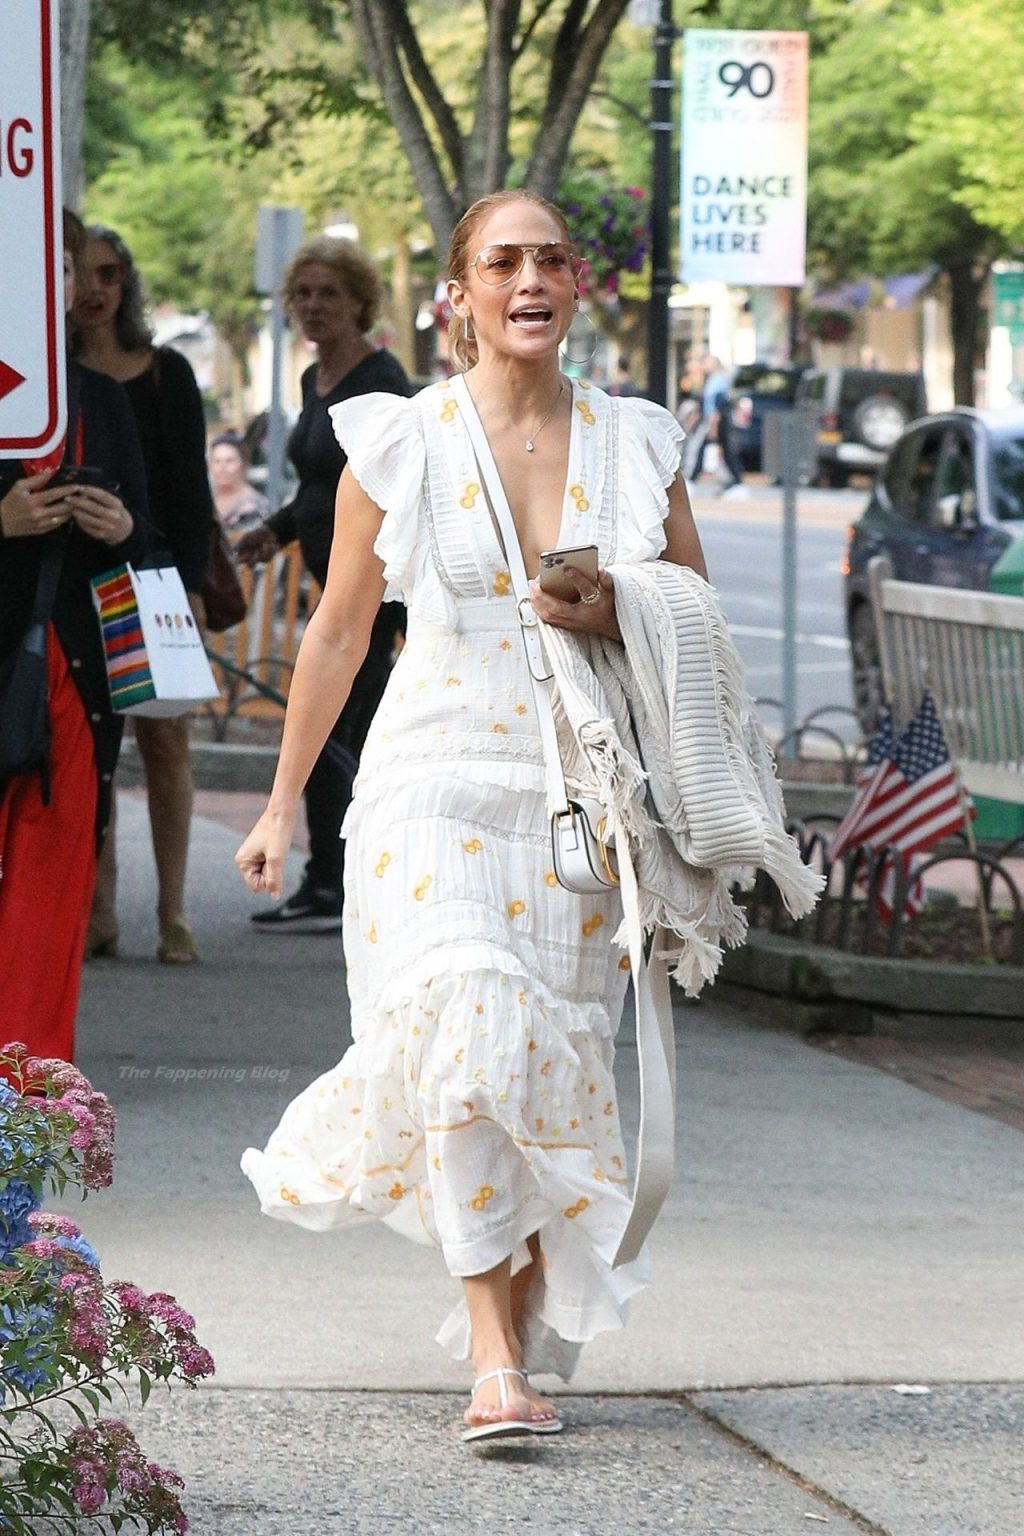 Jennifer Lopez Wears a Plunging Summer Dress Shopping in The Hamptons (45 Photos)